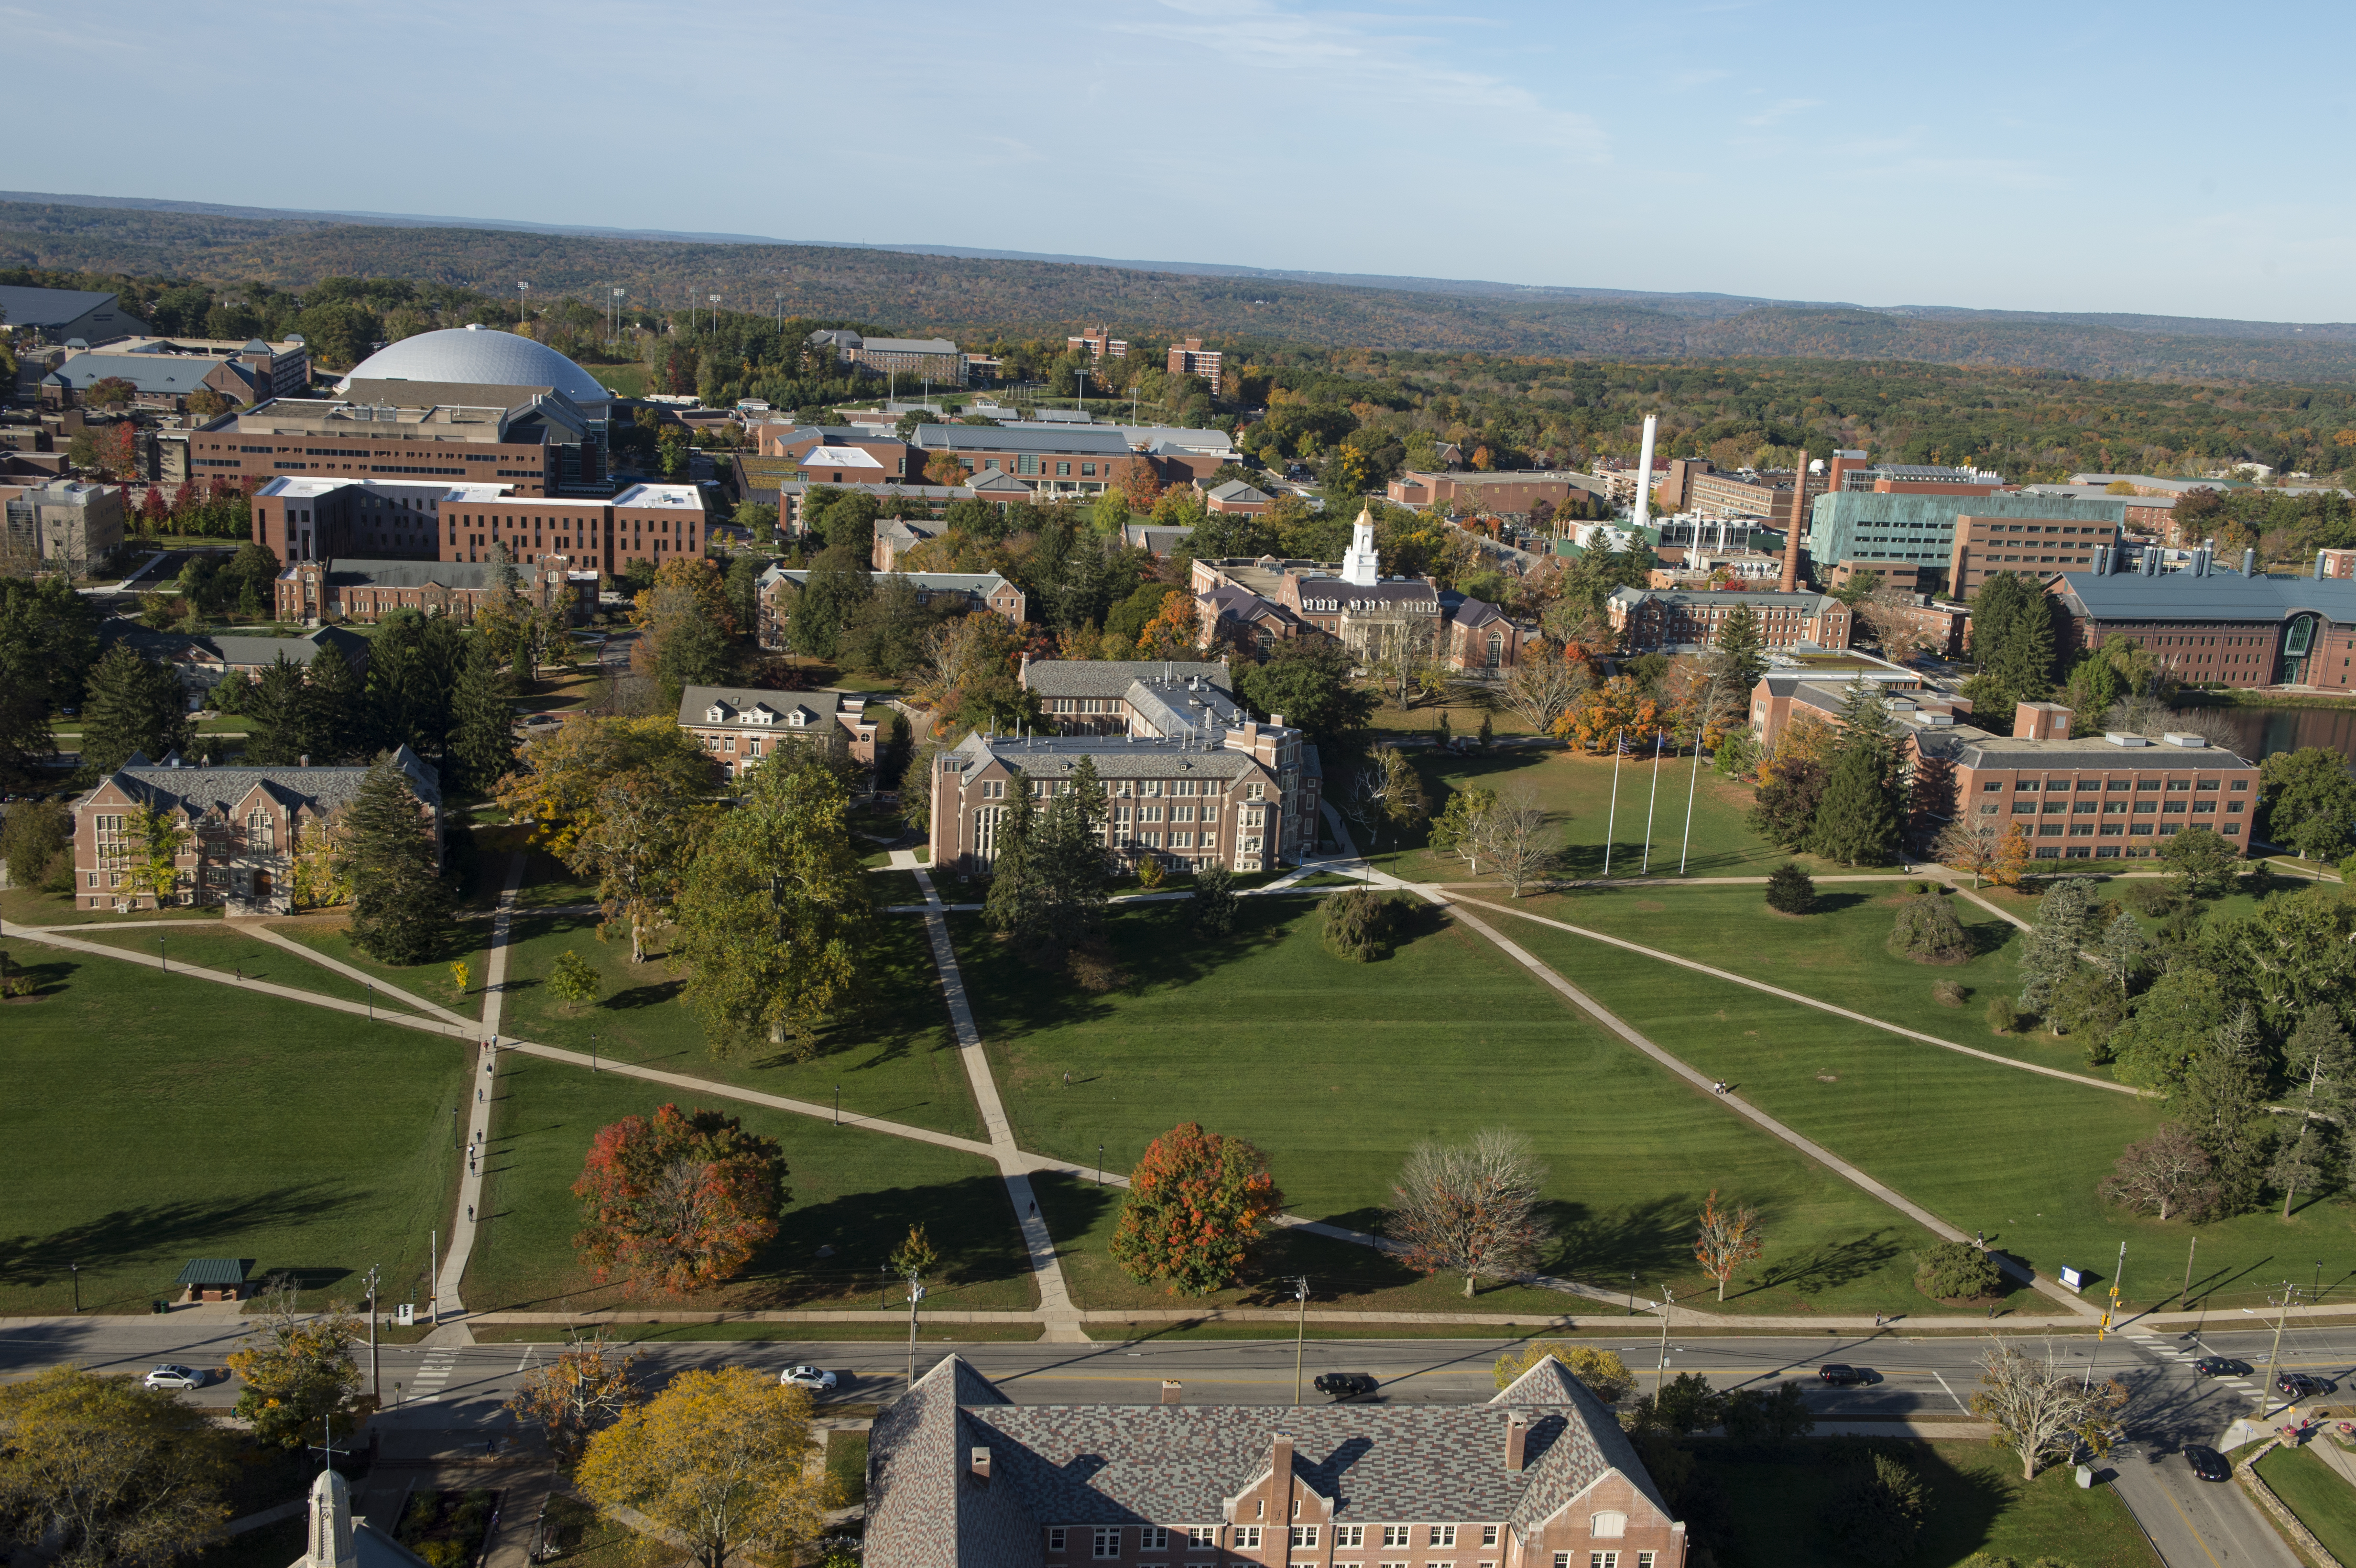 Aerial View of the UConn campus